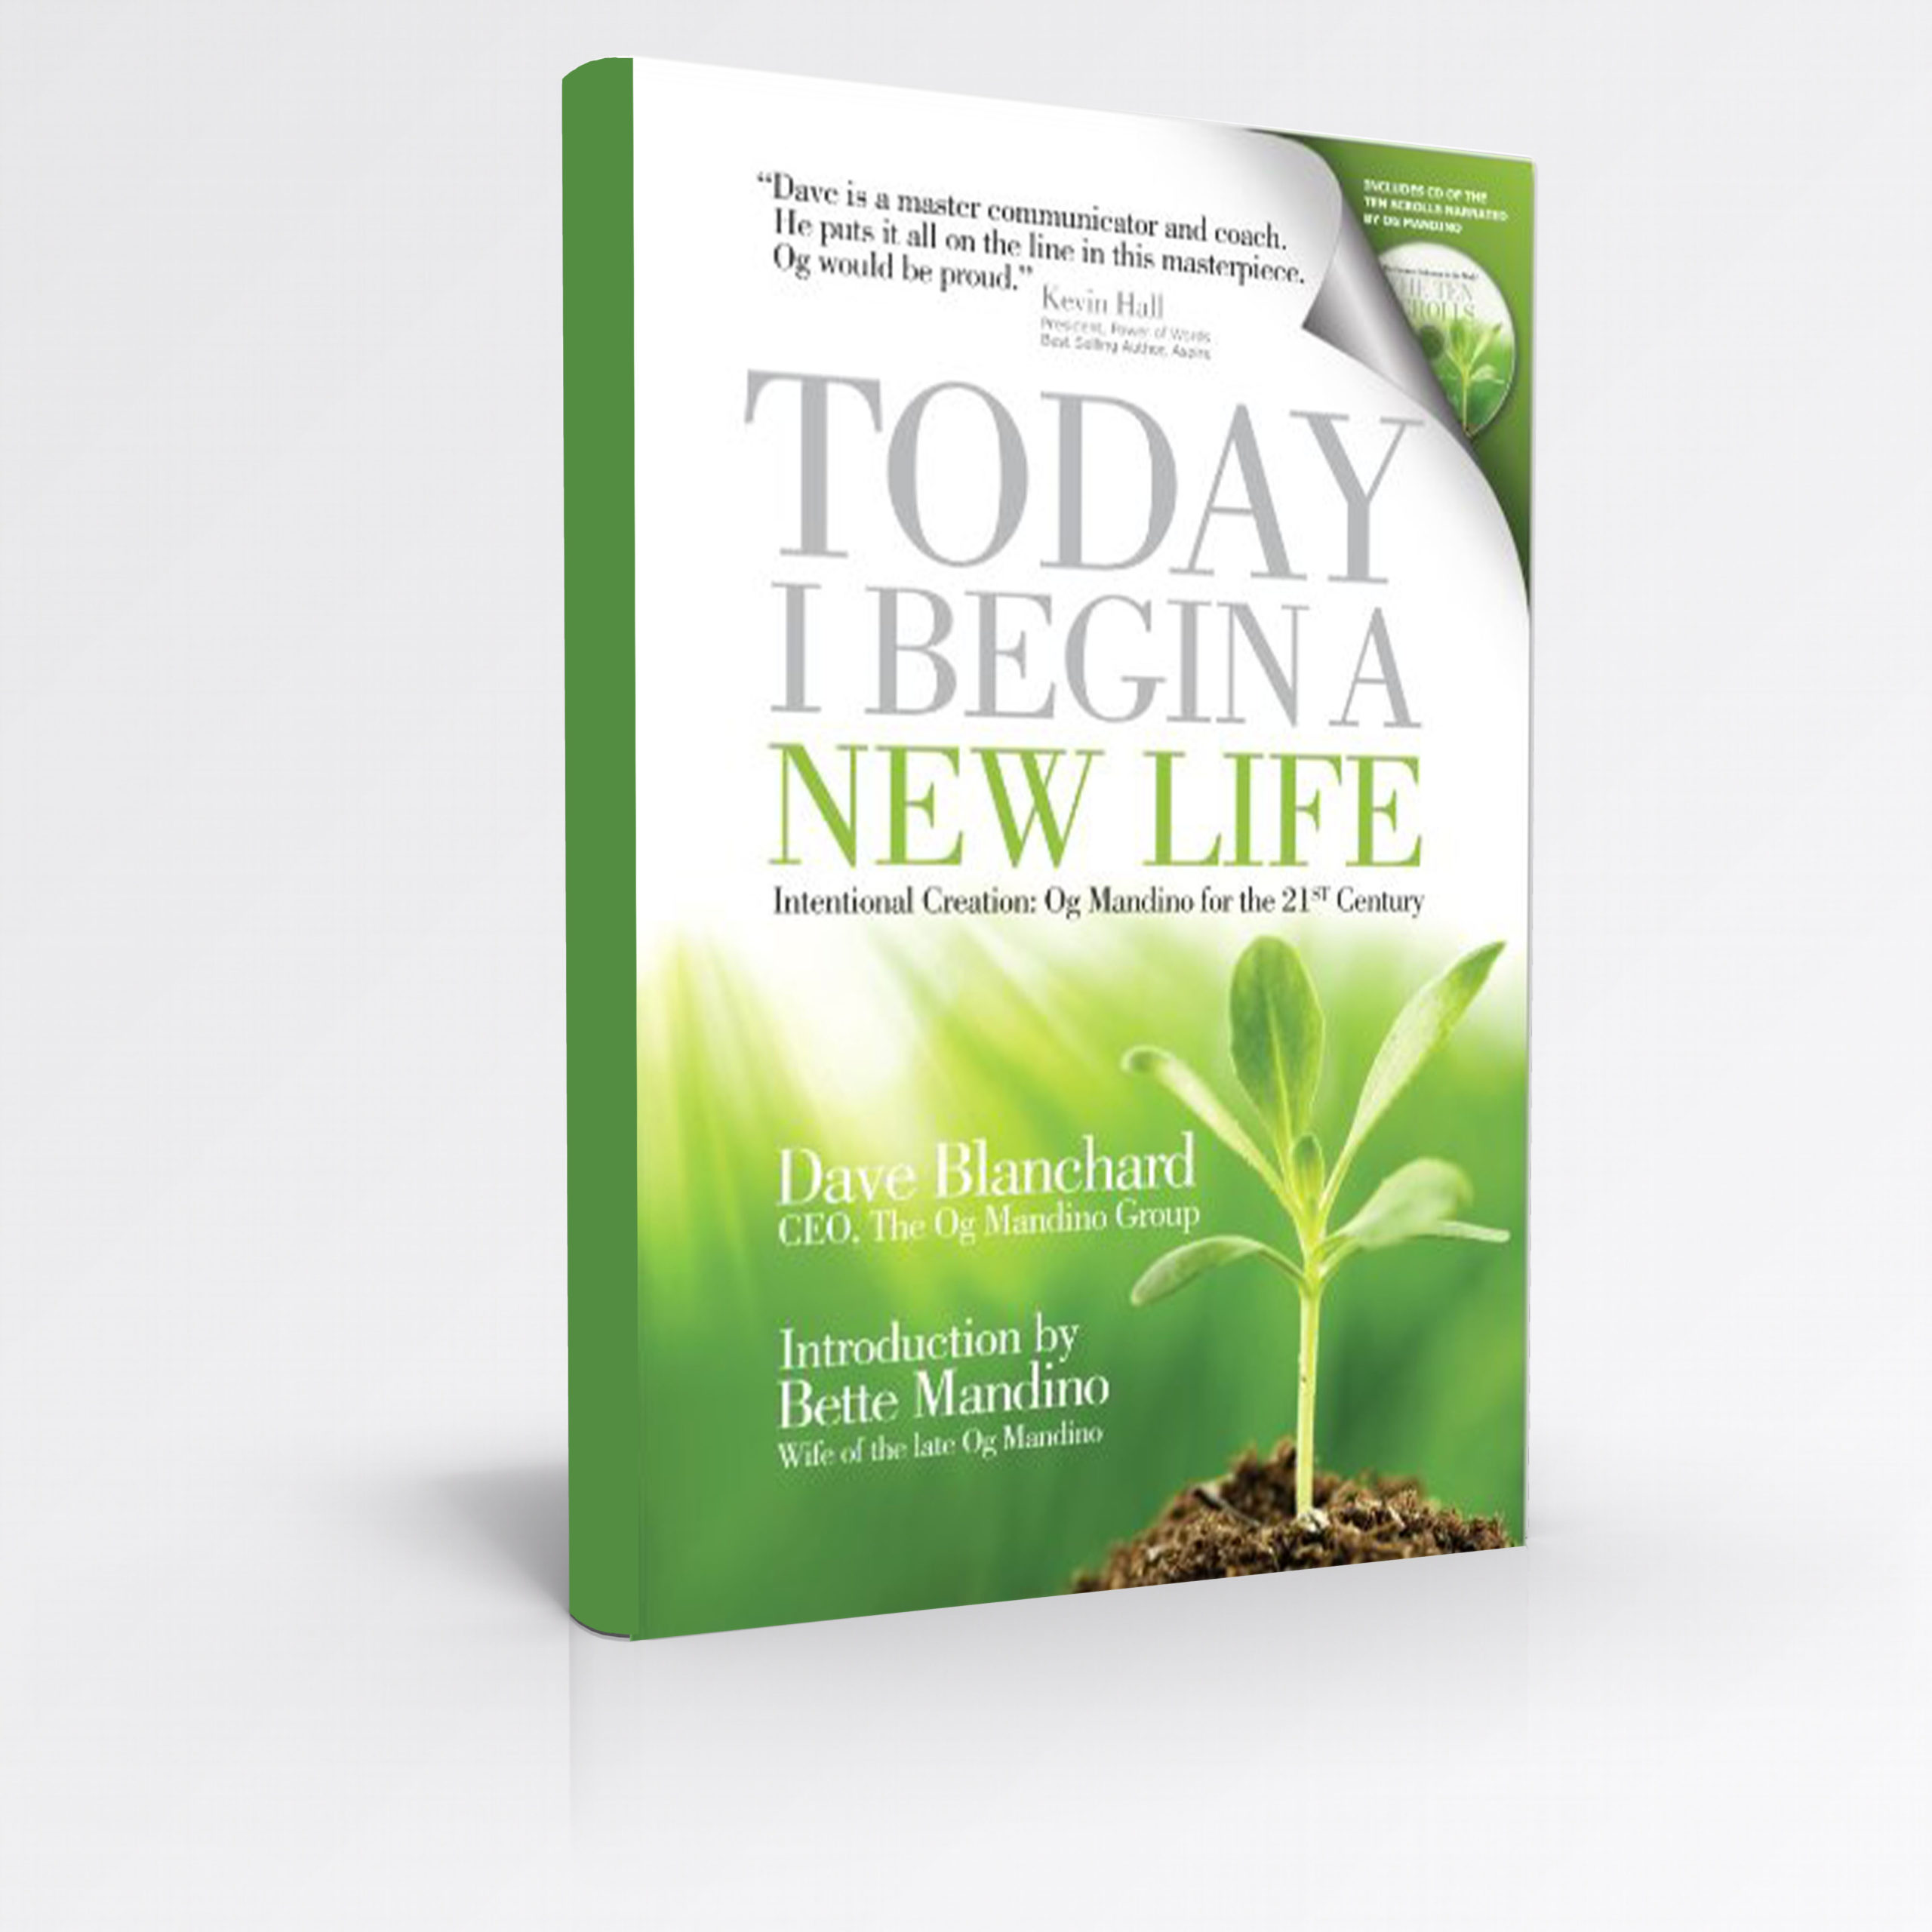 Today I Begin A New Life - Book